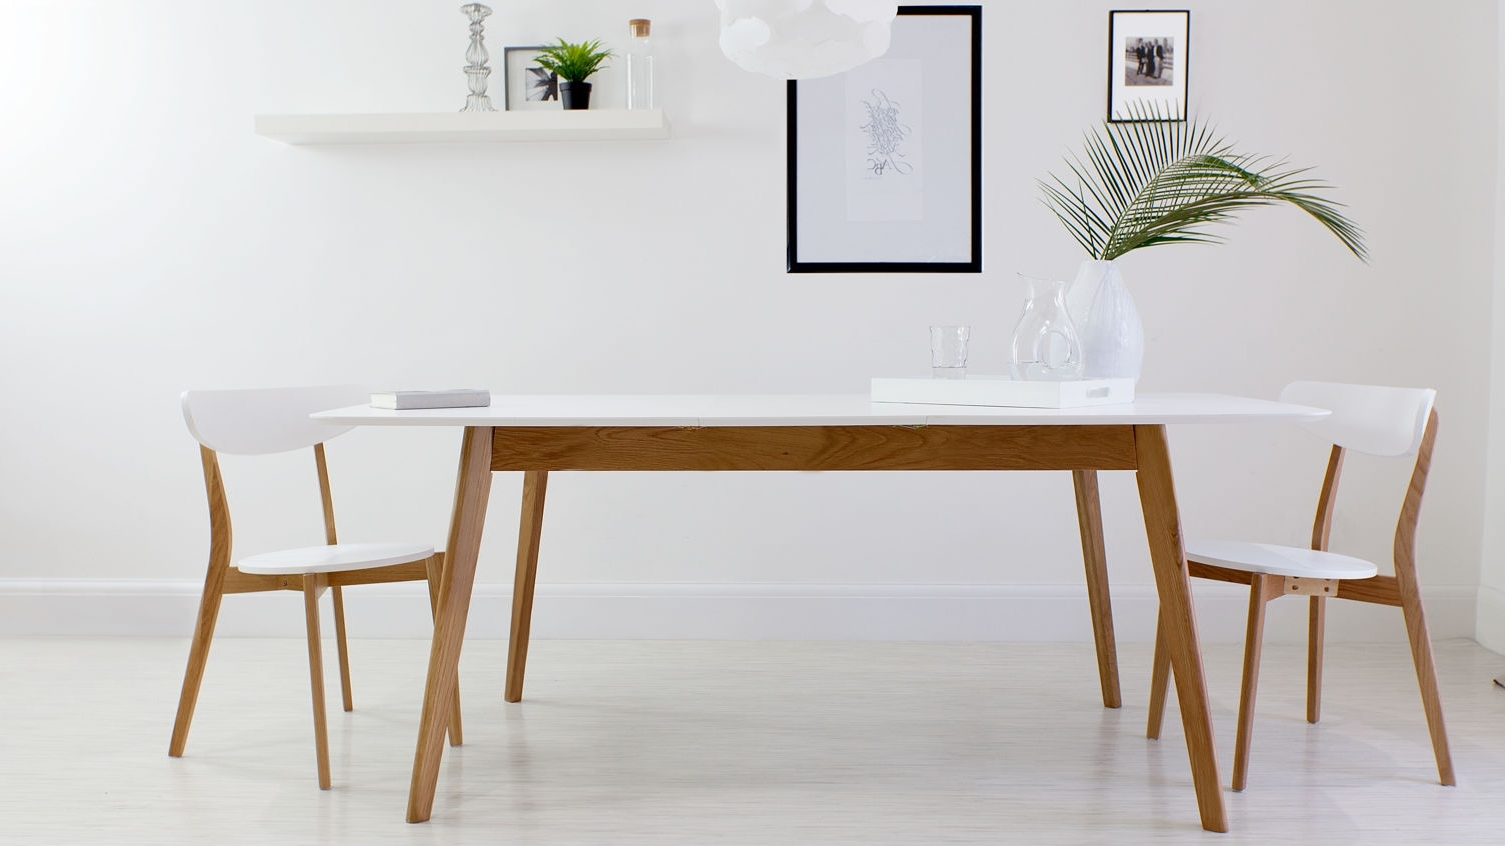 White Dining Tables Within Newest Contemporary White Dining Table Best For Small Room (View 19 of 25)